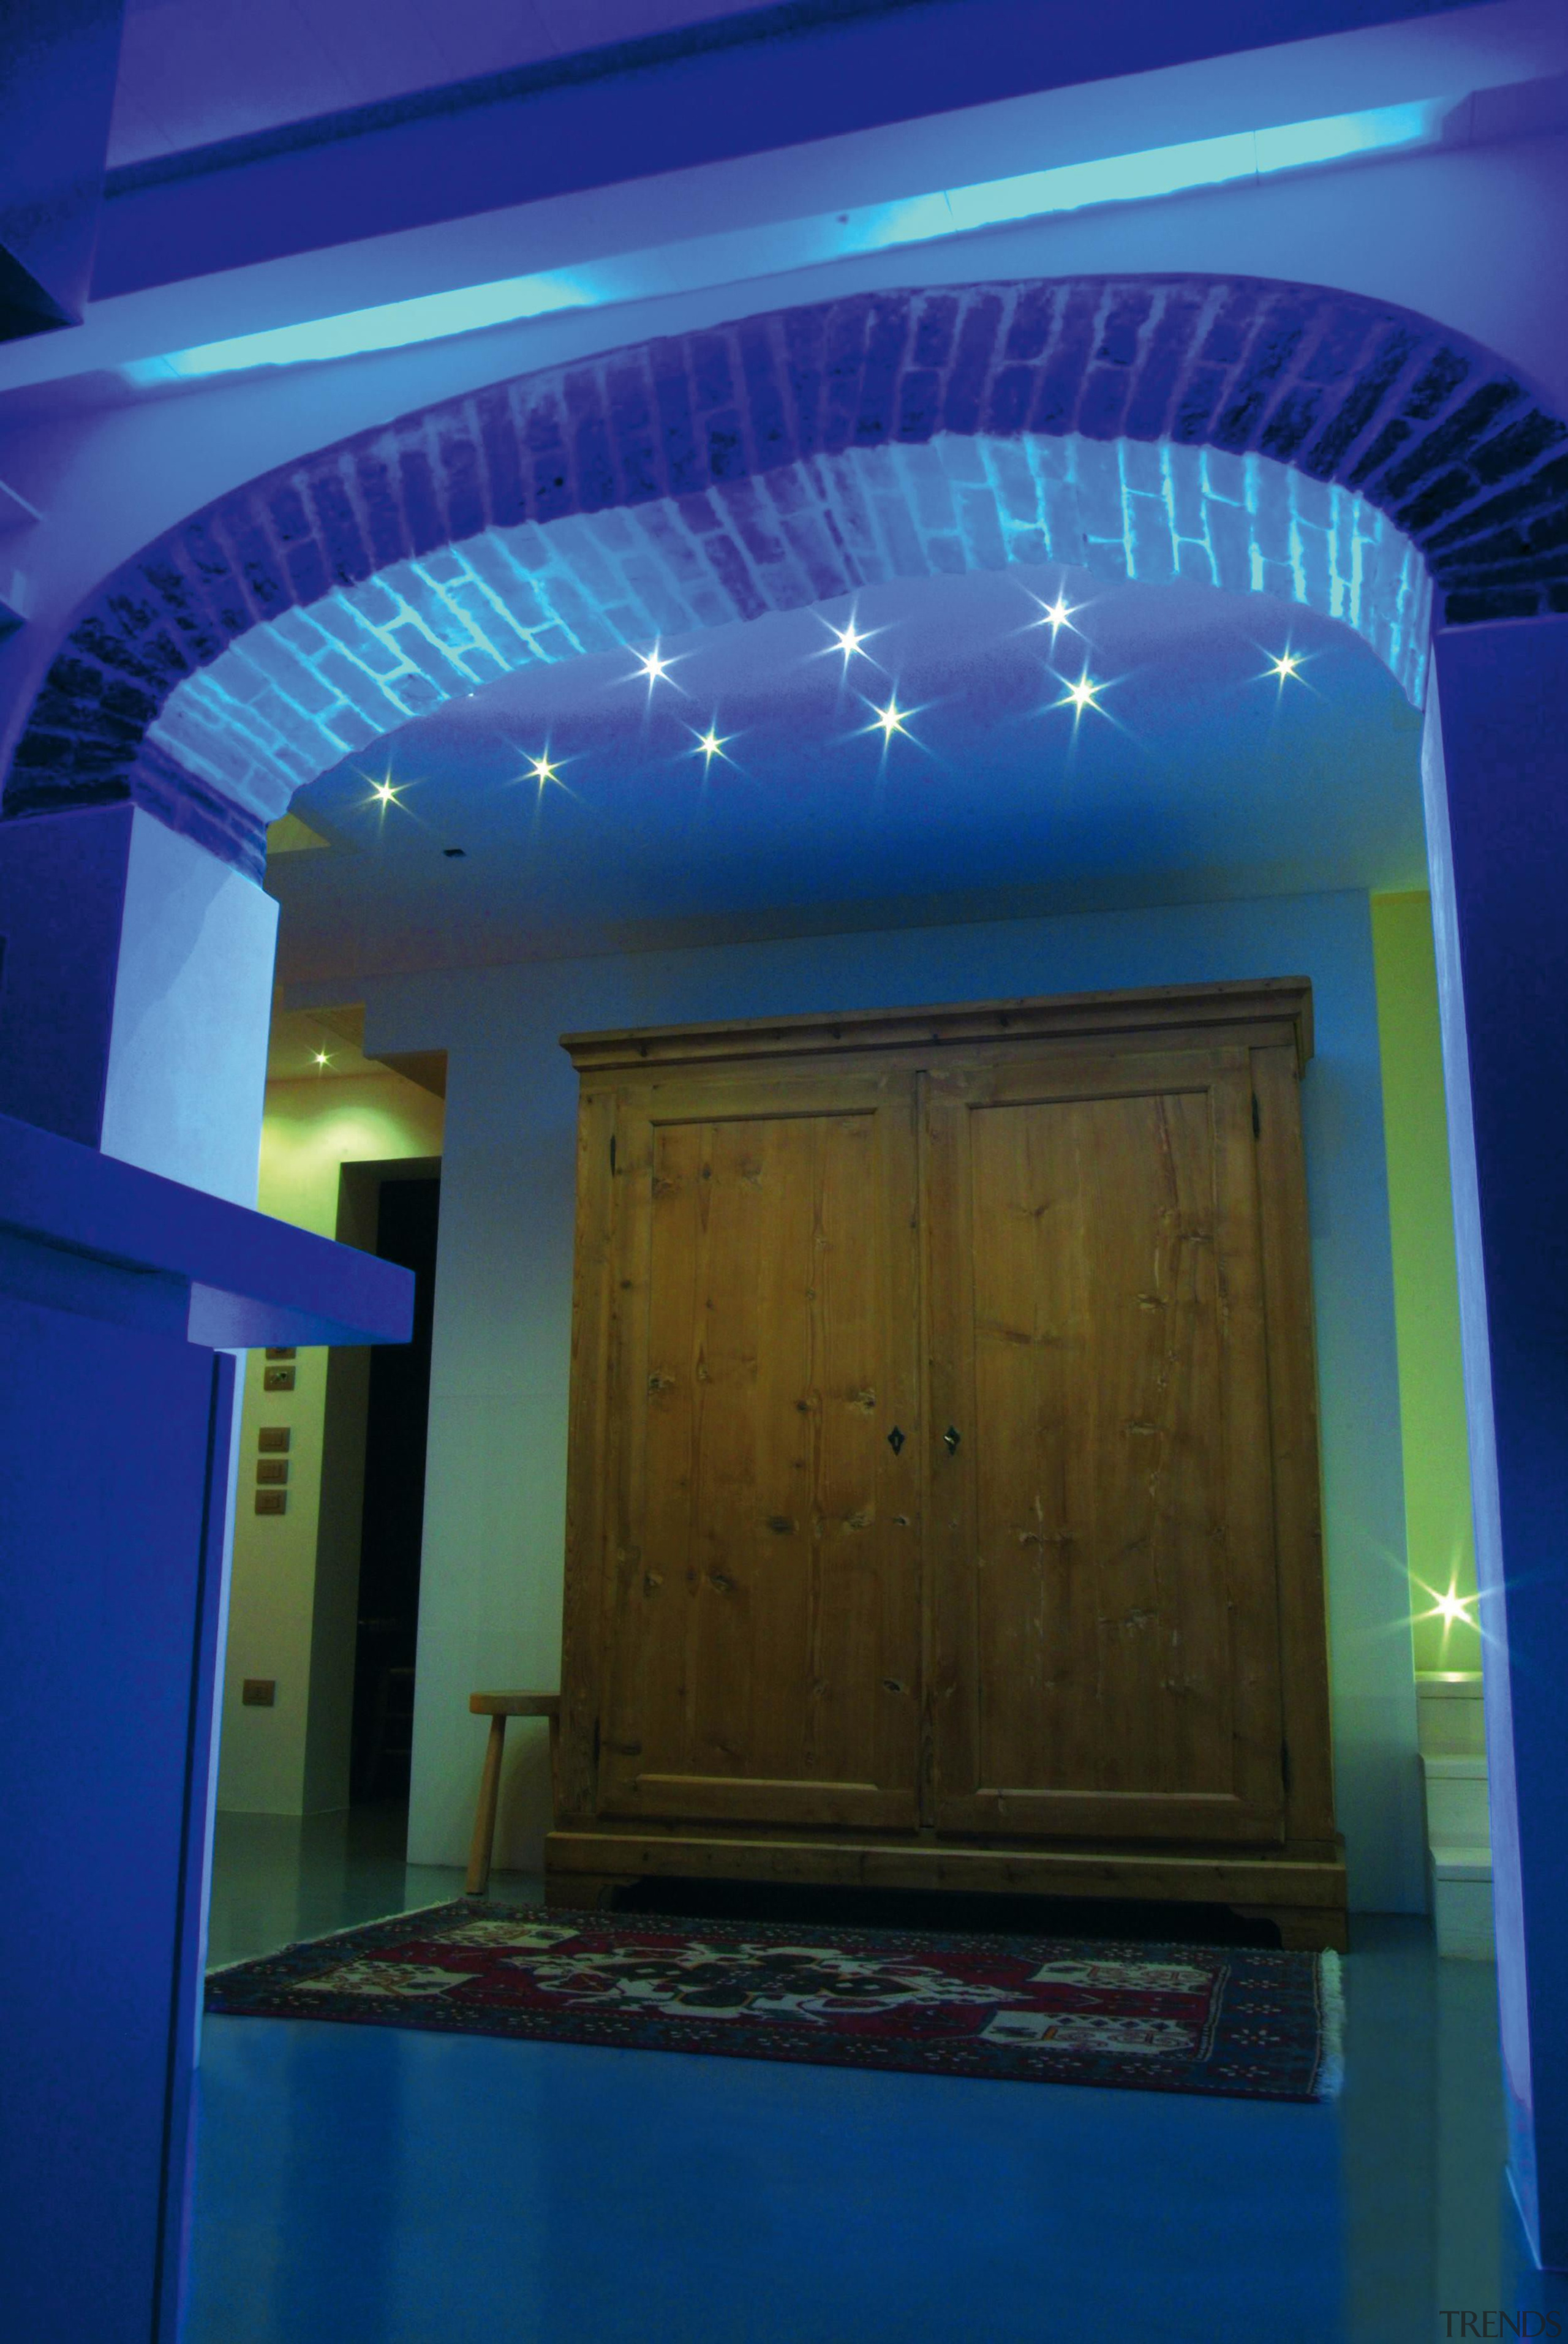 LED Lights, lighting lighting - LED Lights - architecture, blue, ceiling, daylighting, home, interior design, light, light fixture, lighting, blue